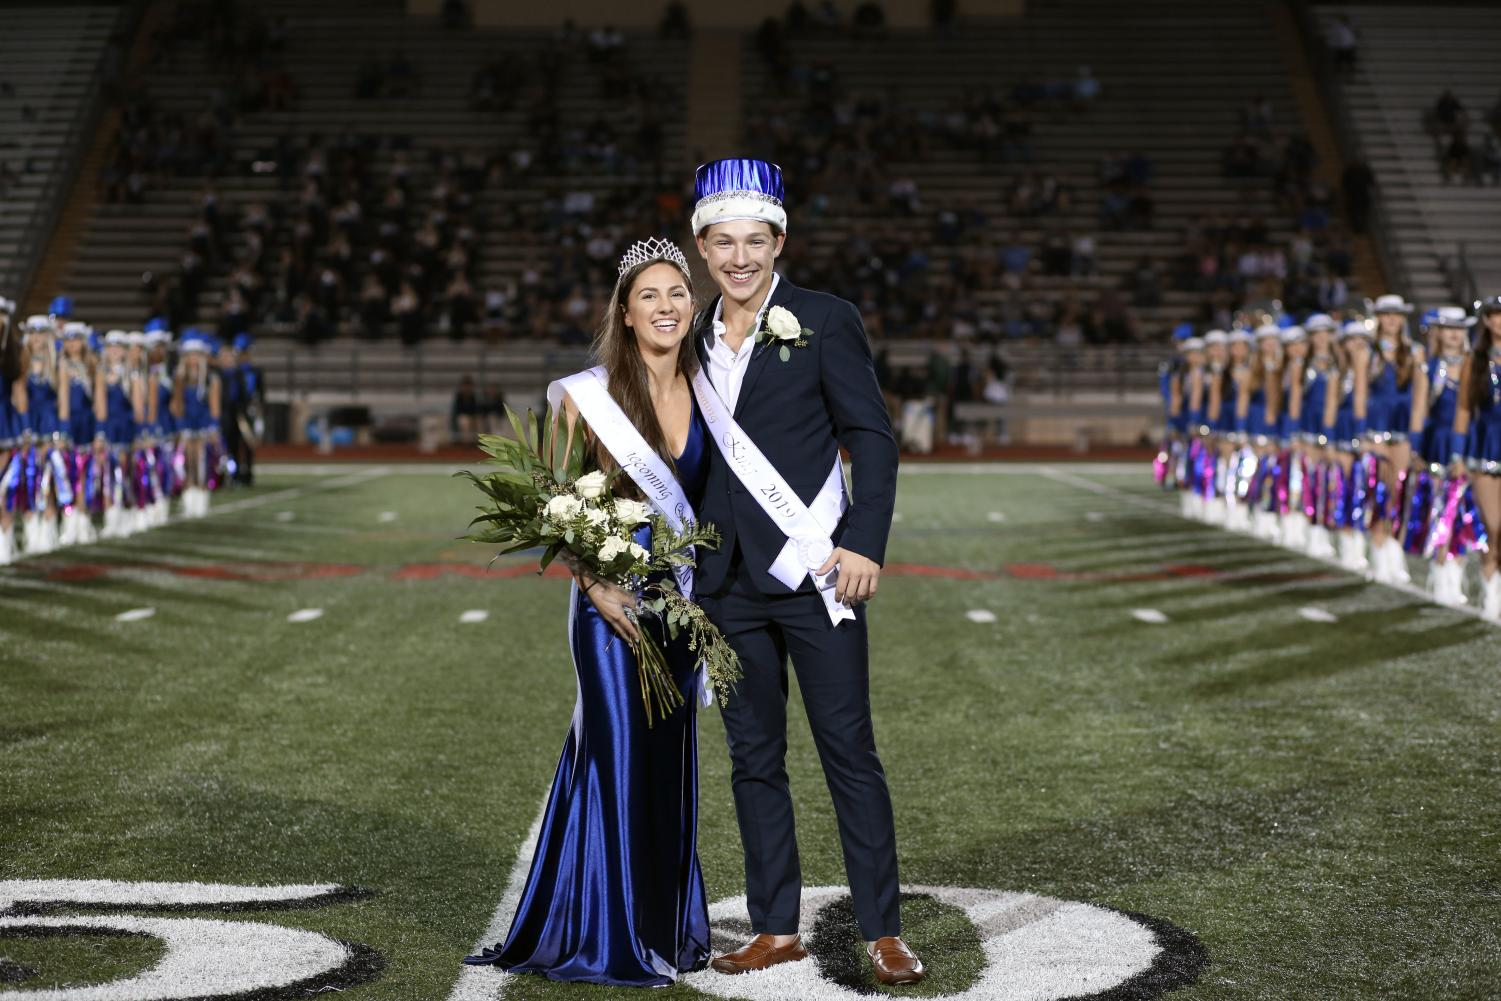 Seniors Halli Landry and Luke Sebesta, the homecoming king and queen, look toward the audience at halftime.